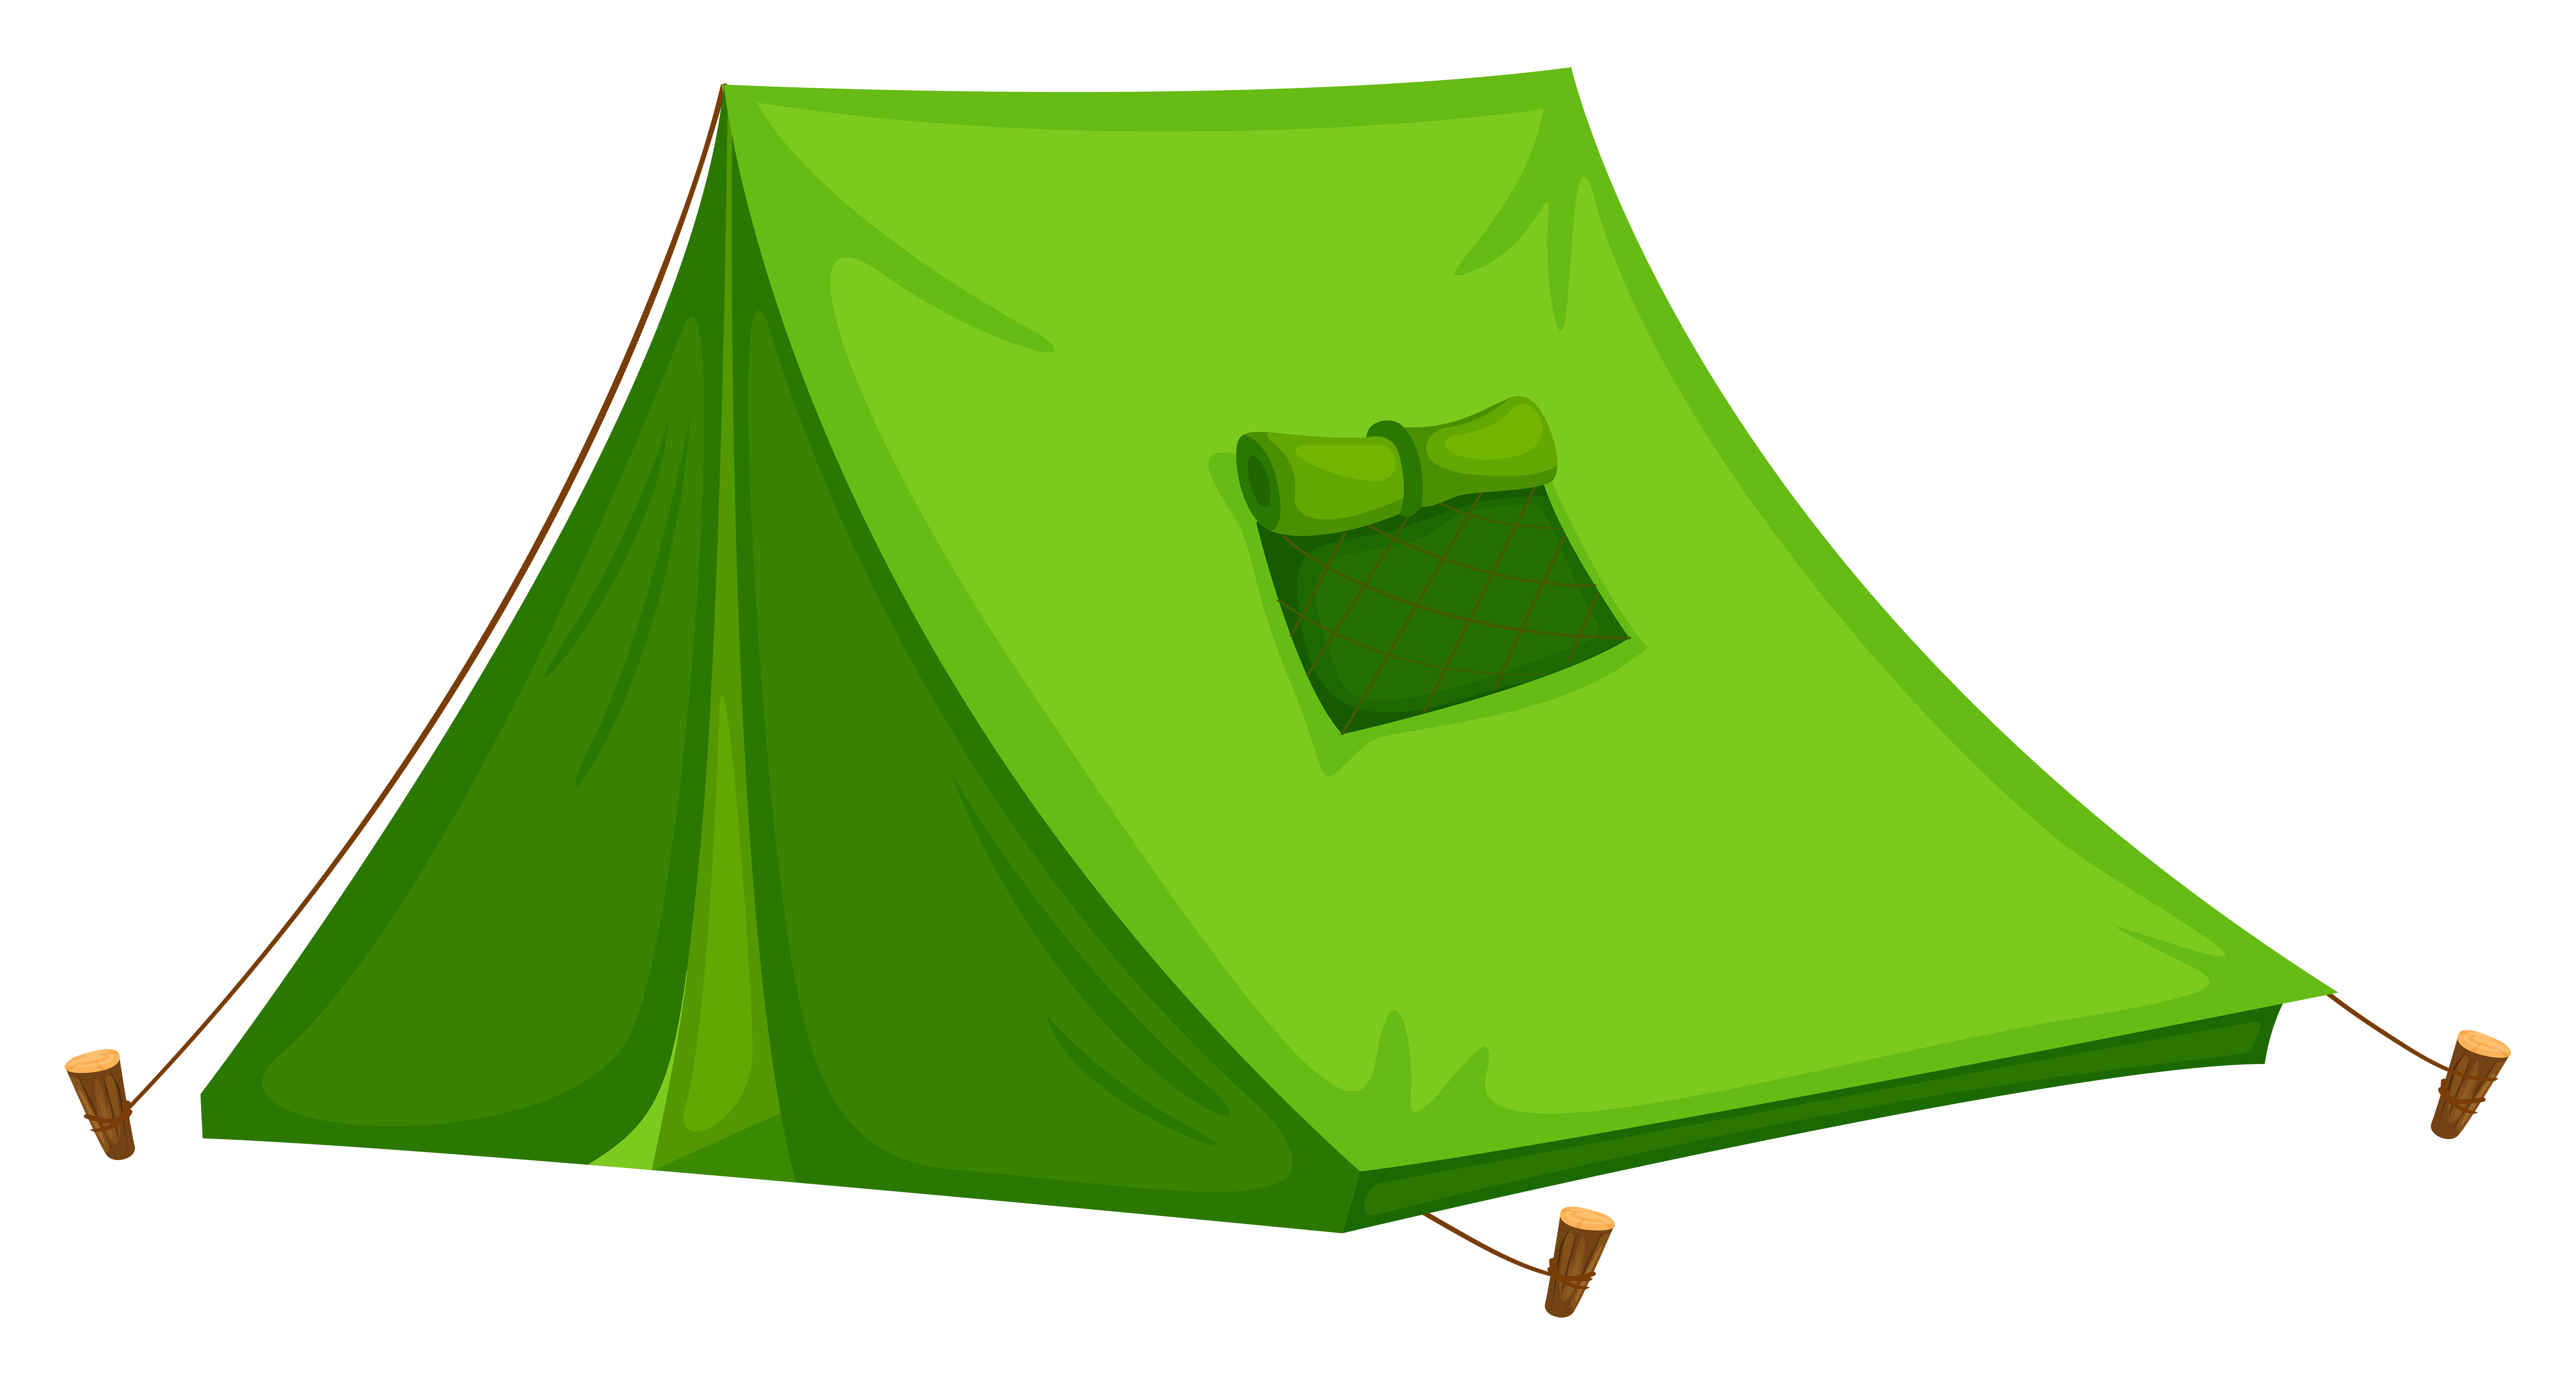 Tent transparent cartoon. Collection of clipart